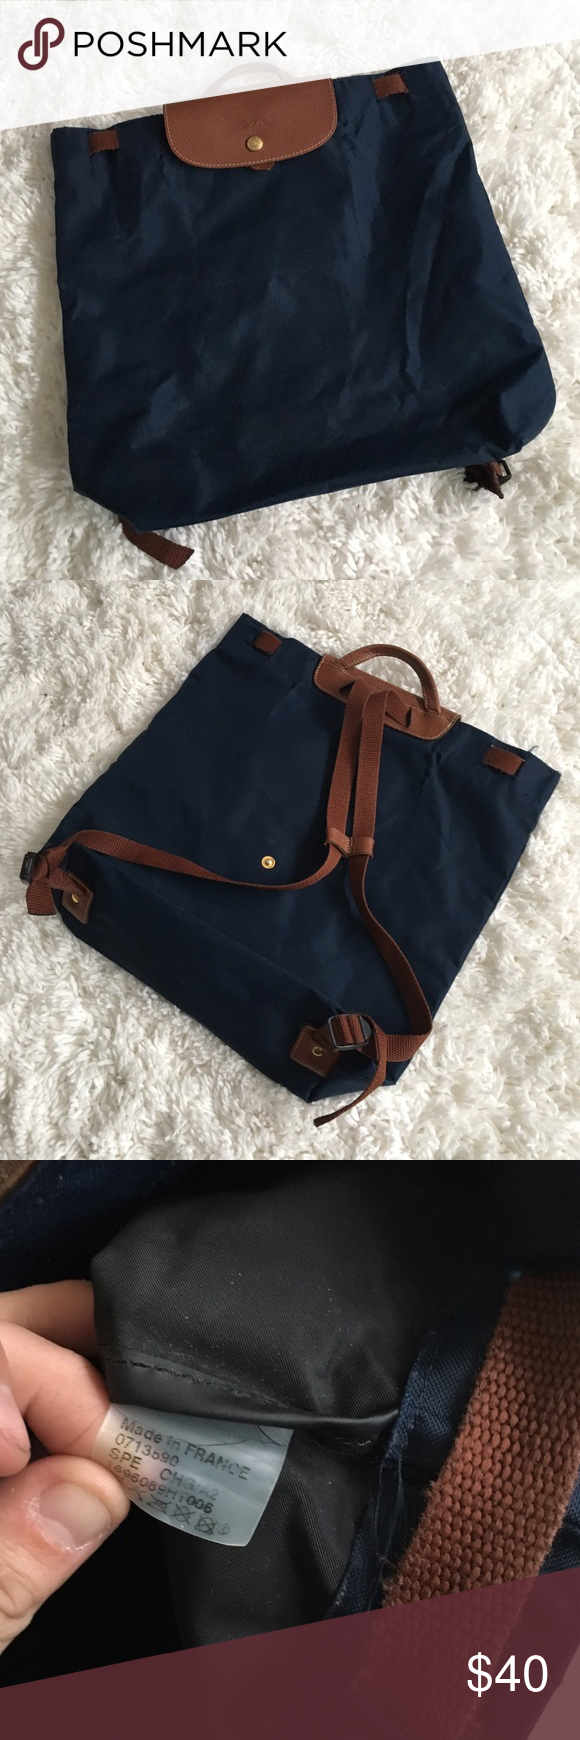 38716b79aa0a Navy blue longchamp backpack Good used condition with minor flaws. Inside  liner has some spots